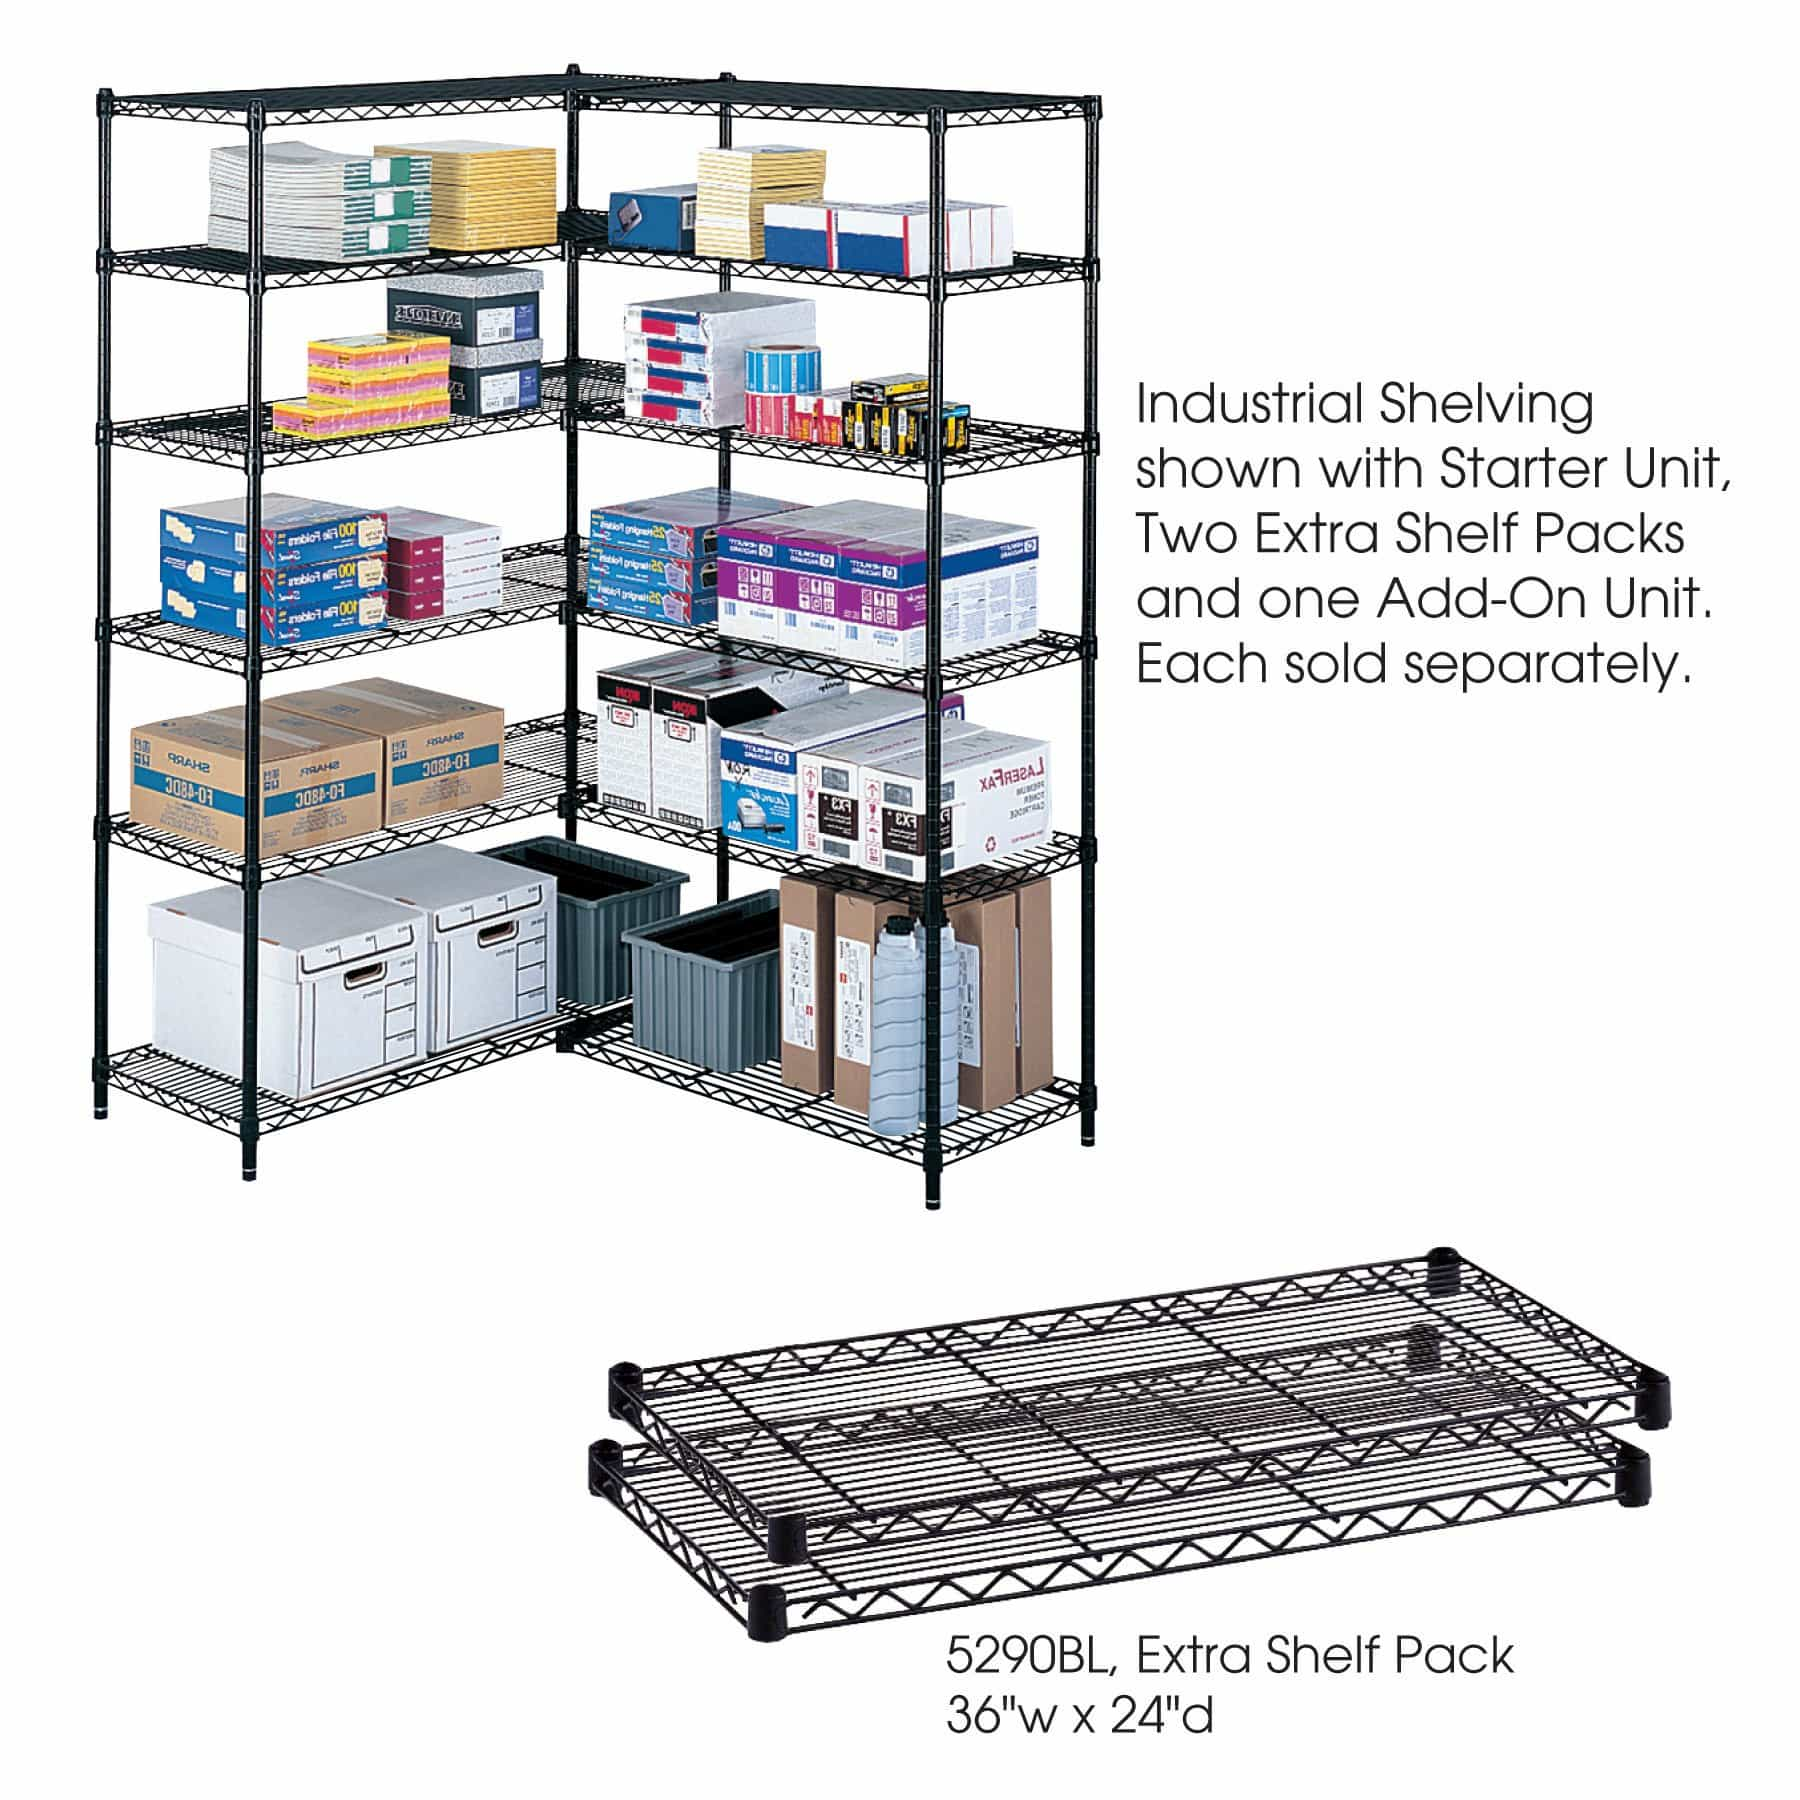 bedinhome - Safco 24 In x 36 In extra strength powder coat finish Extra Shelf Pack storage - Safco - Wire Shelving